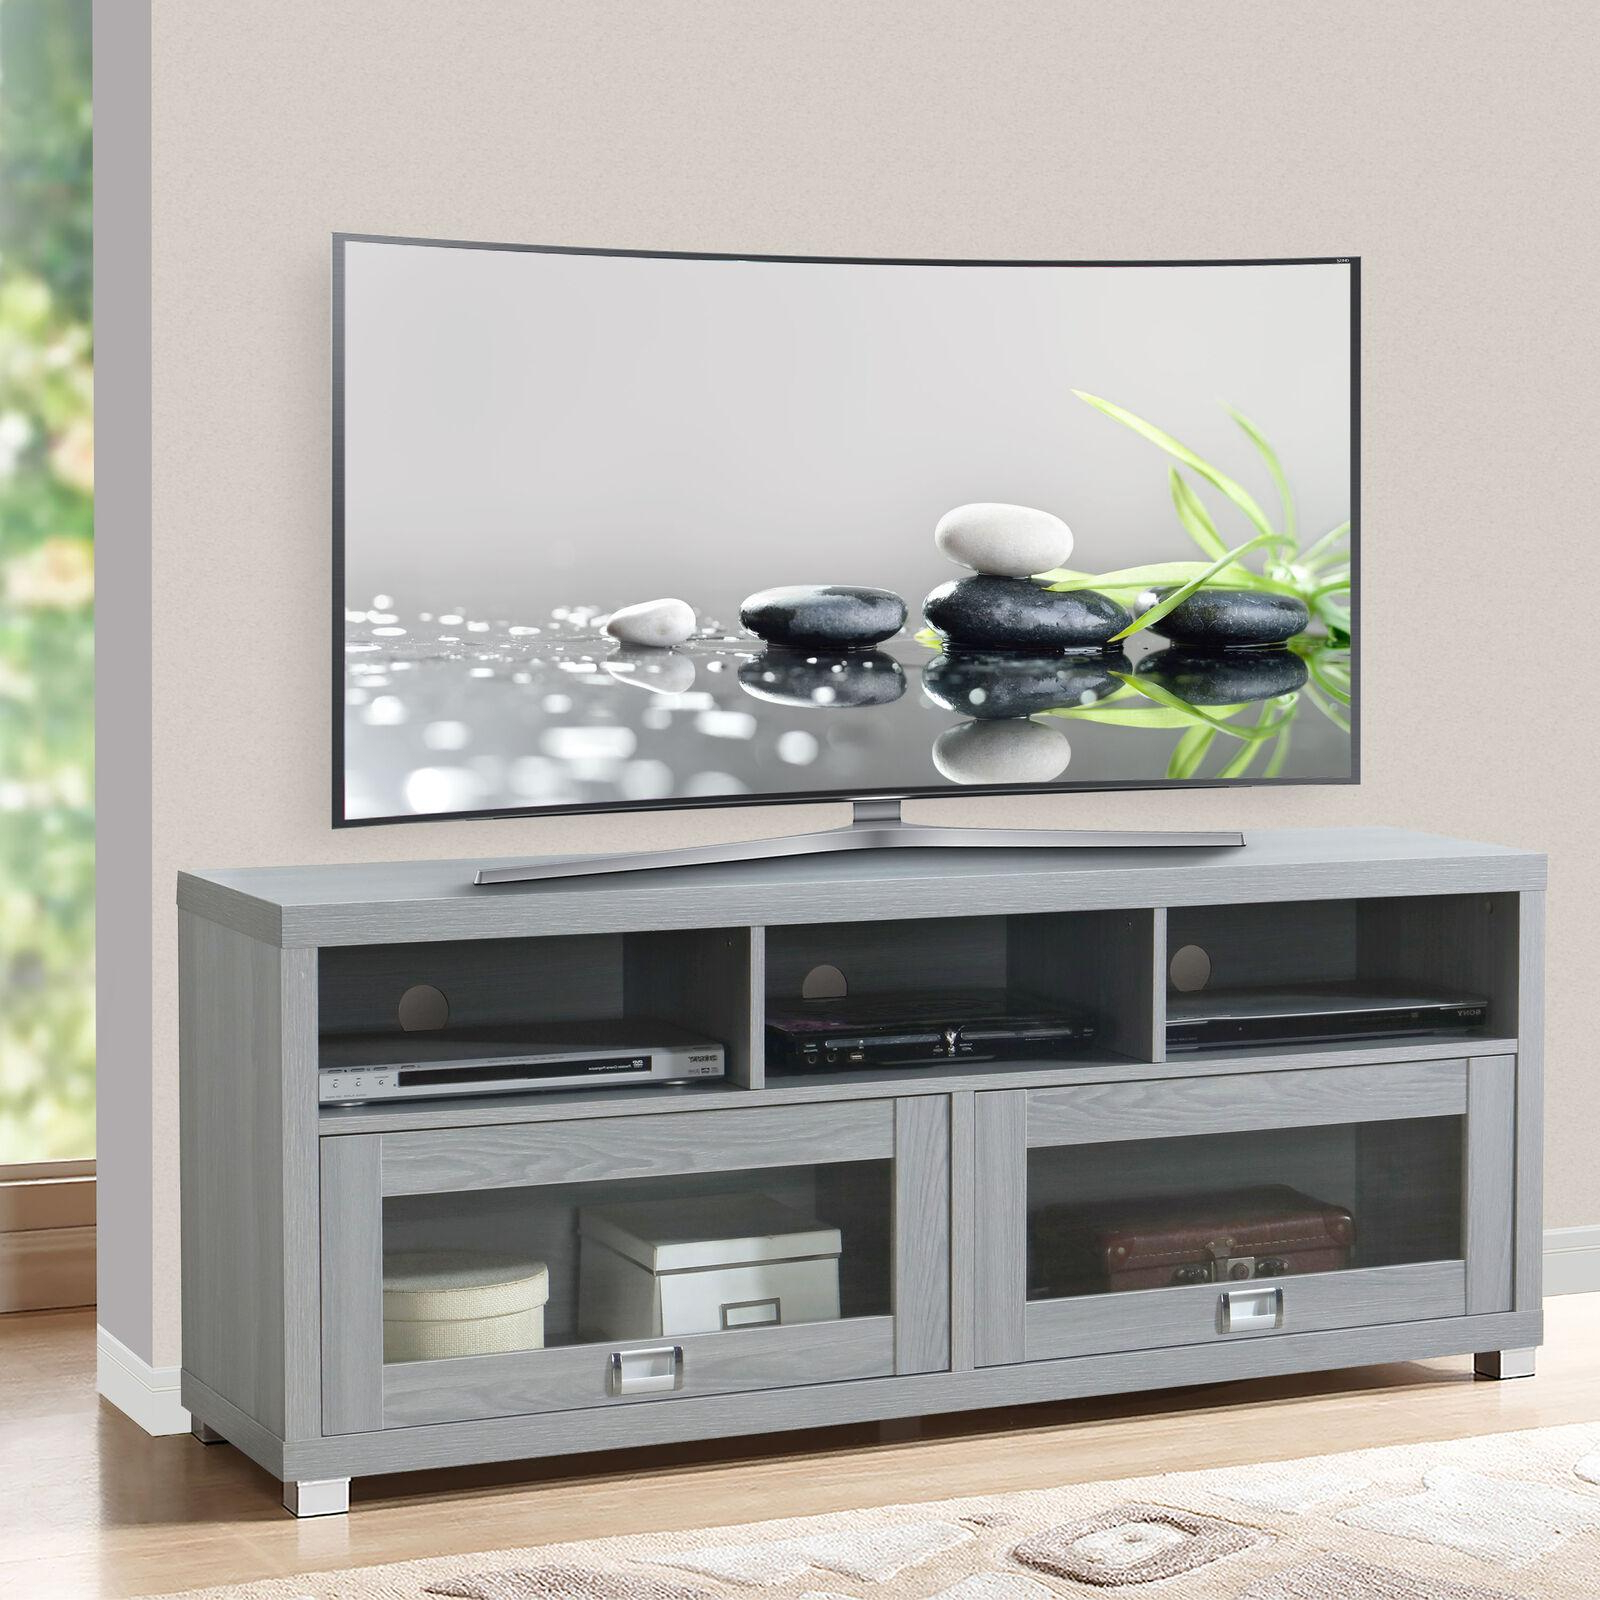 """Tv Stand 75 Inch Flat Screen Entertainment Medi Within Chrissy Tv Stands For Tvs Up To 75"""" (View 8 of 20)"""